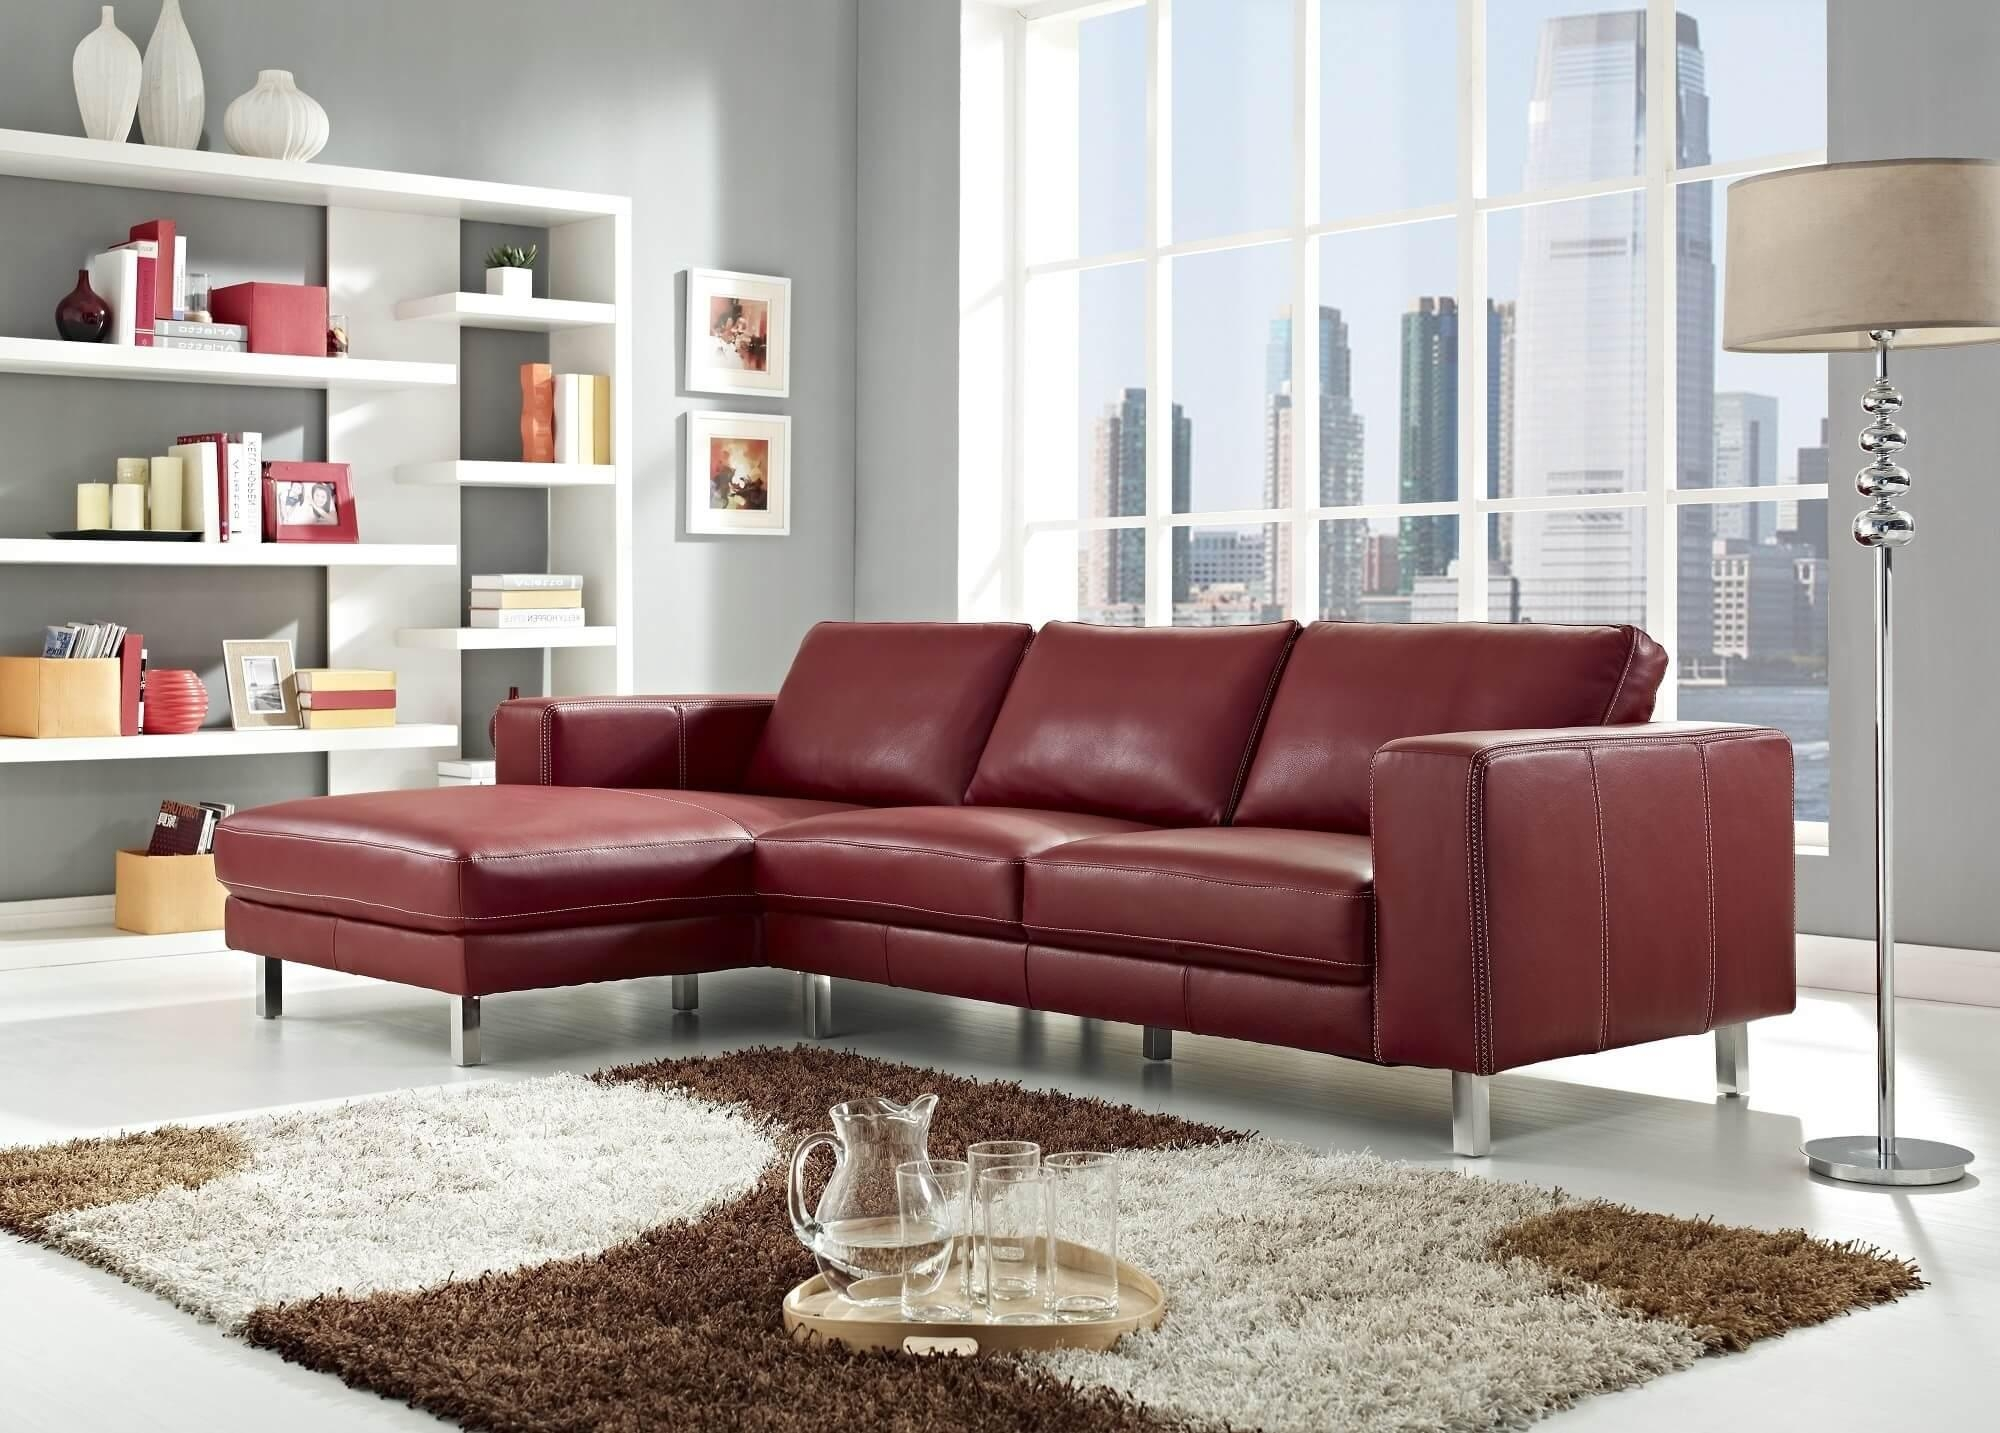 Sofas Center : Leather Sofas On Sale Sectional Fabric Furniture Inside Dark Red Leather Sofas (Image 20 of 20)